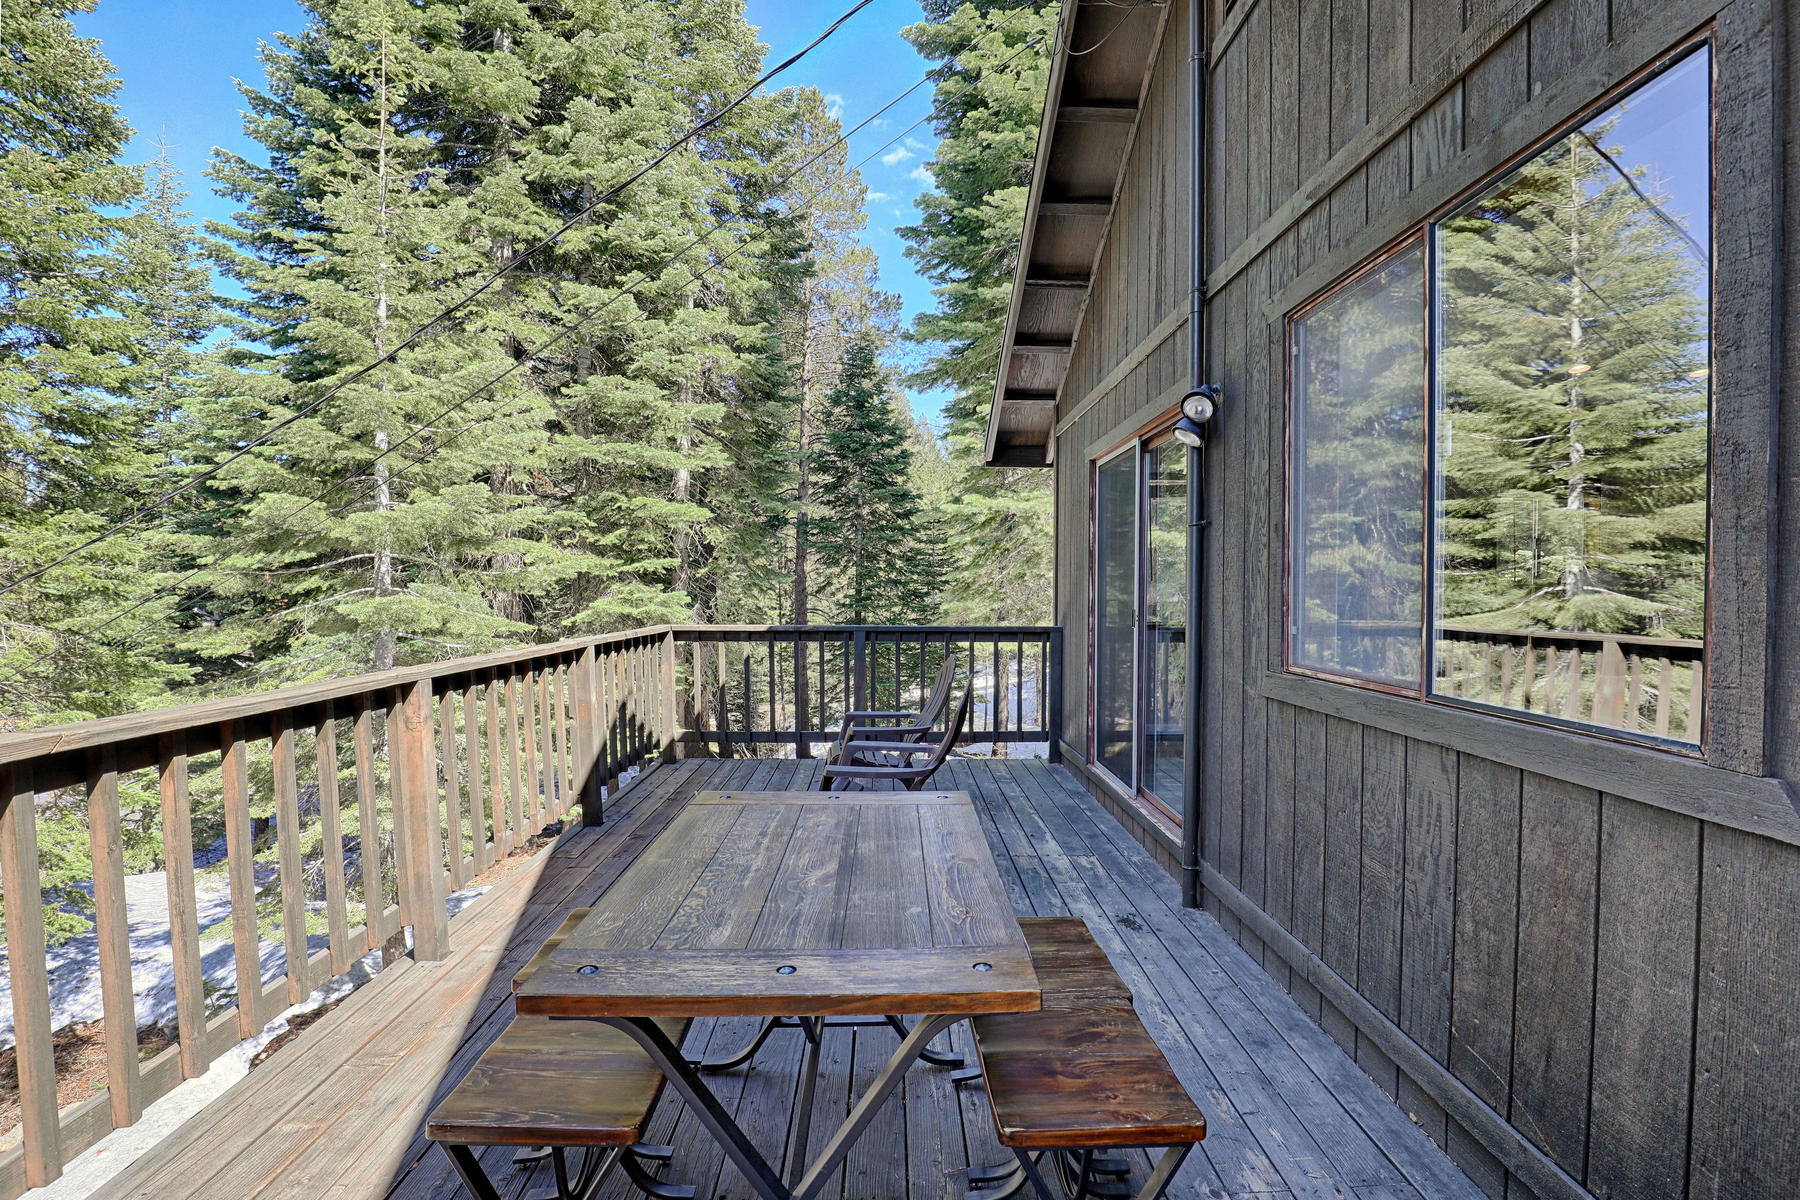 Additional photo for property listing at 13995 Pathway Avenue, Truckee, CA 13995 Pathway Avenue Truckee, California 96161 United States